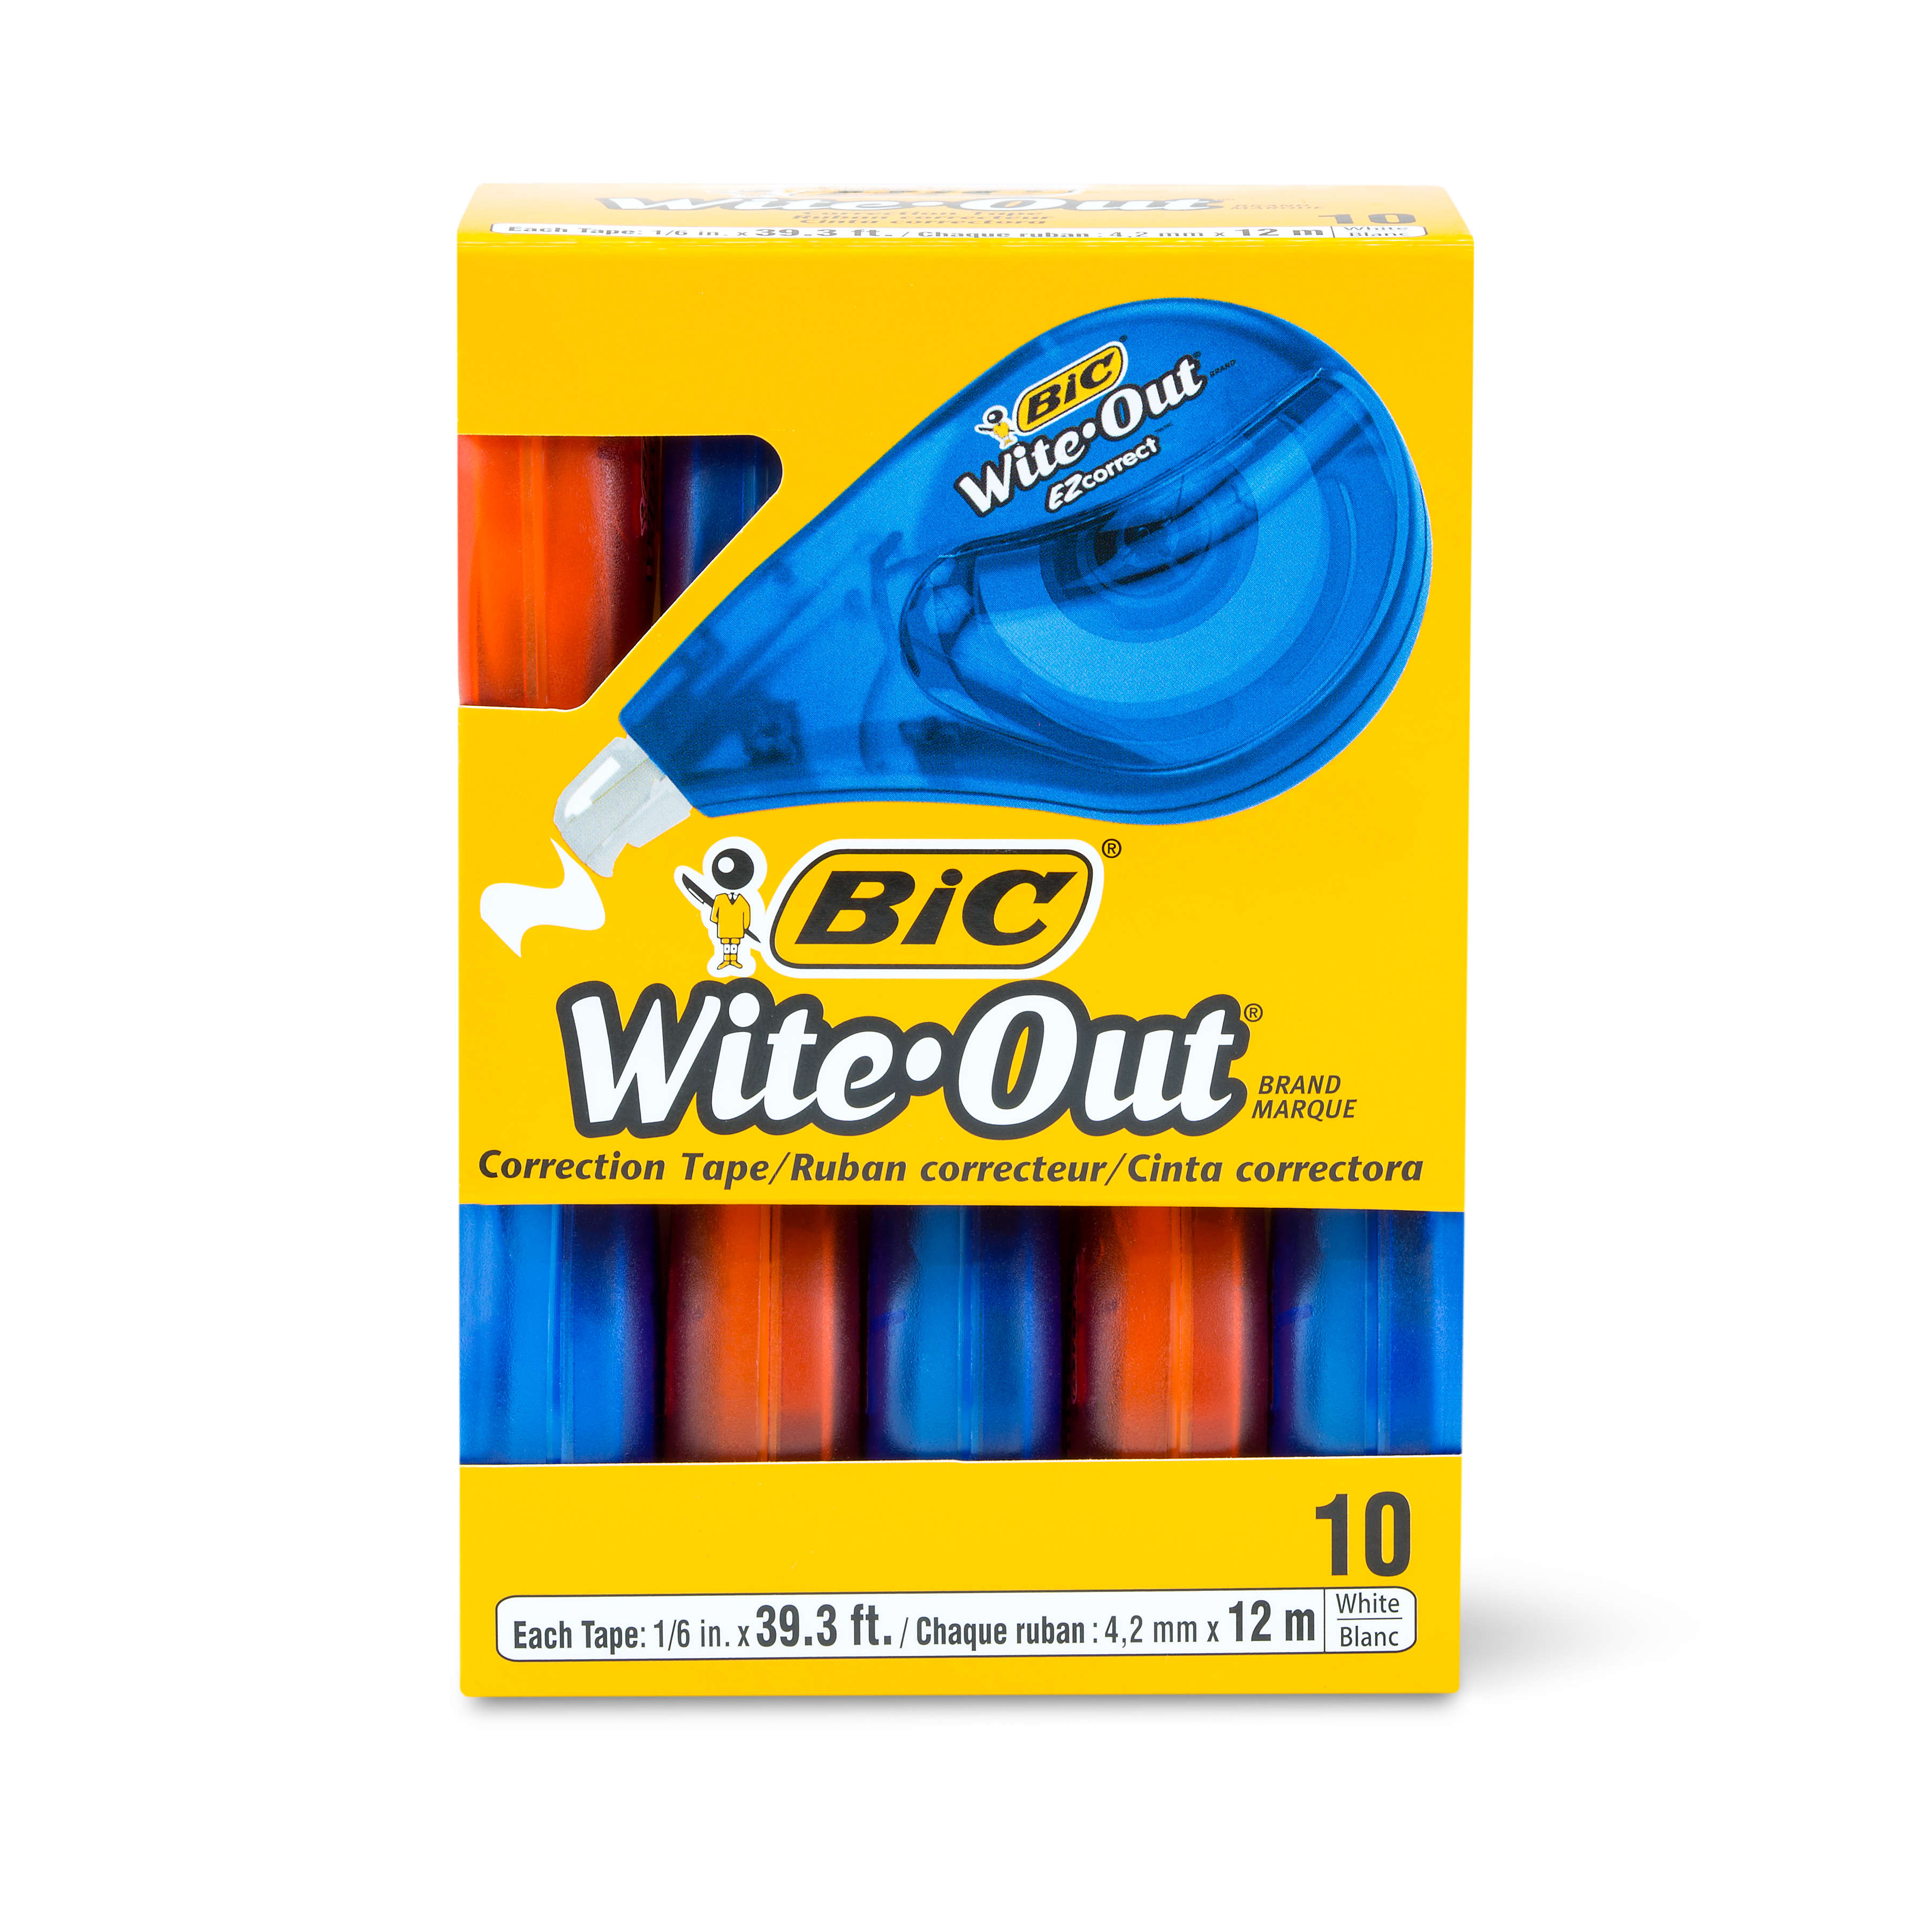 BIC Wite-Out Brand EZ Correct Grip Correction Tape 2-Count White